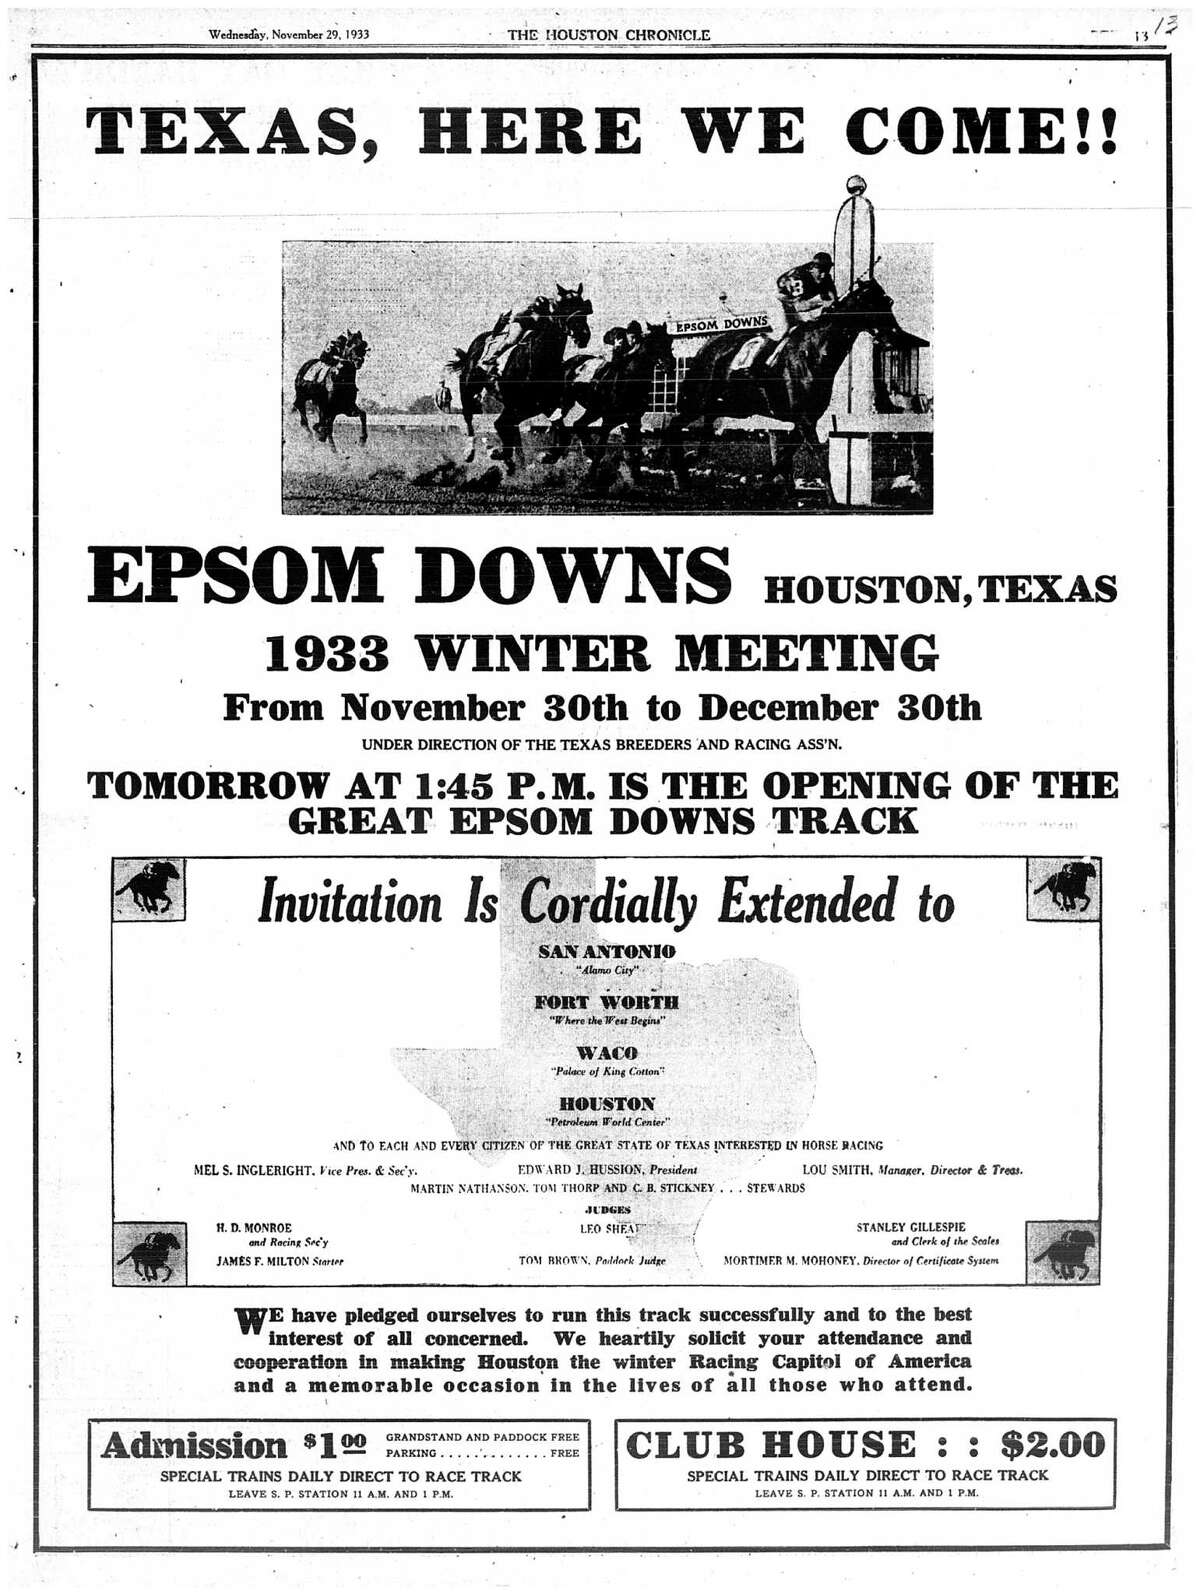 Houston Chronicle inside page: November 29, 1933 - section 1, page 13. Advertisement.